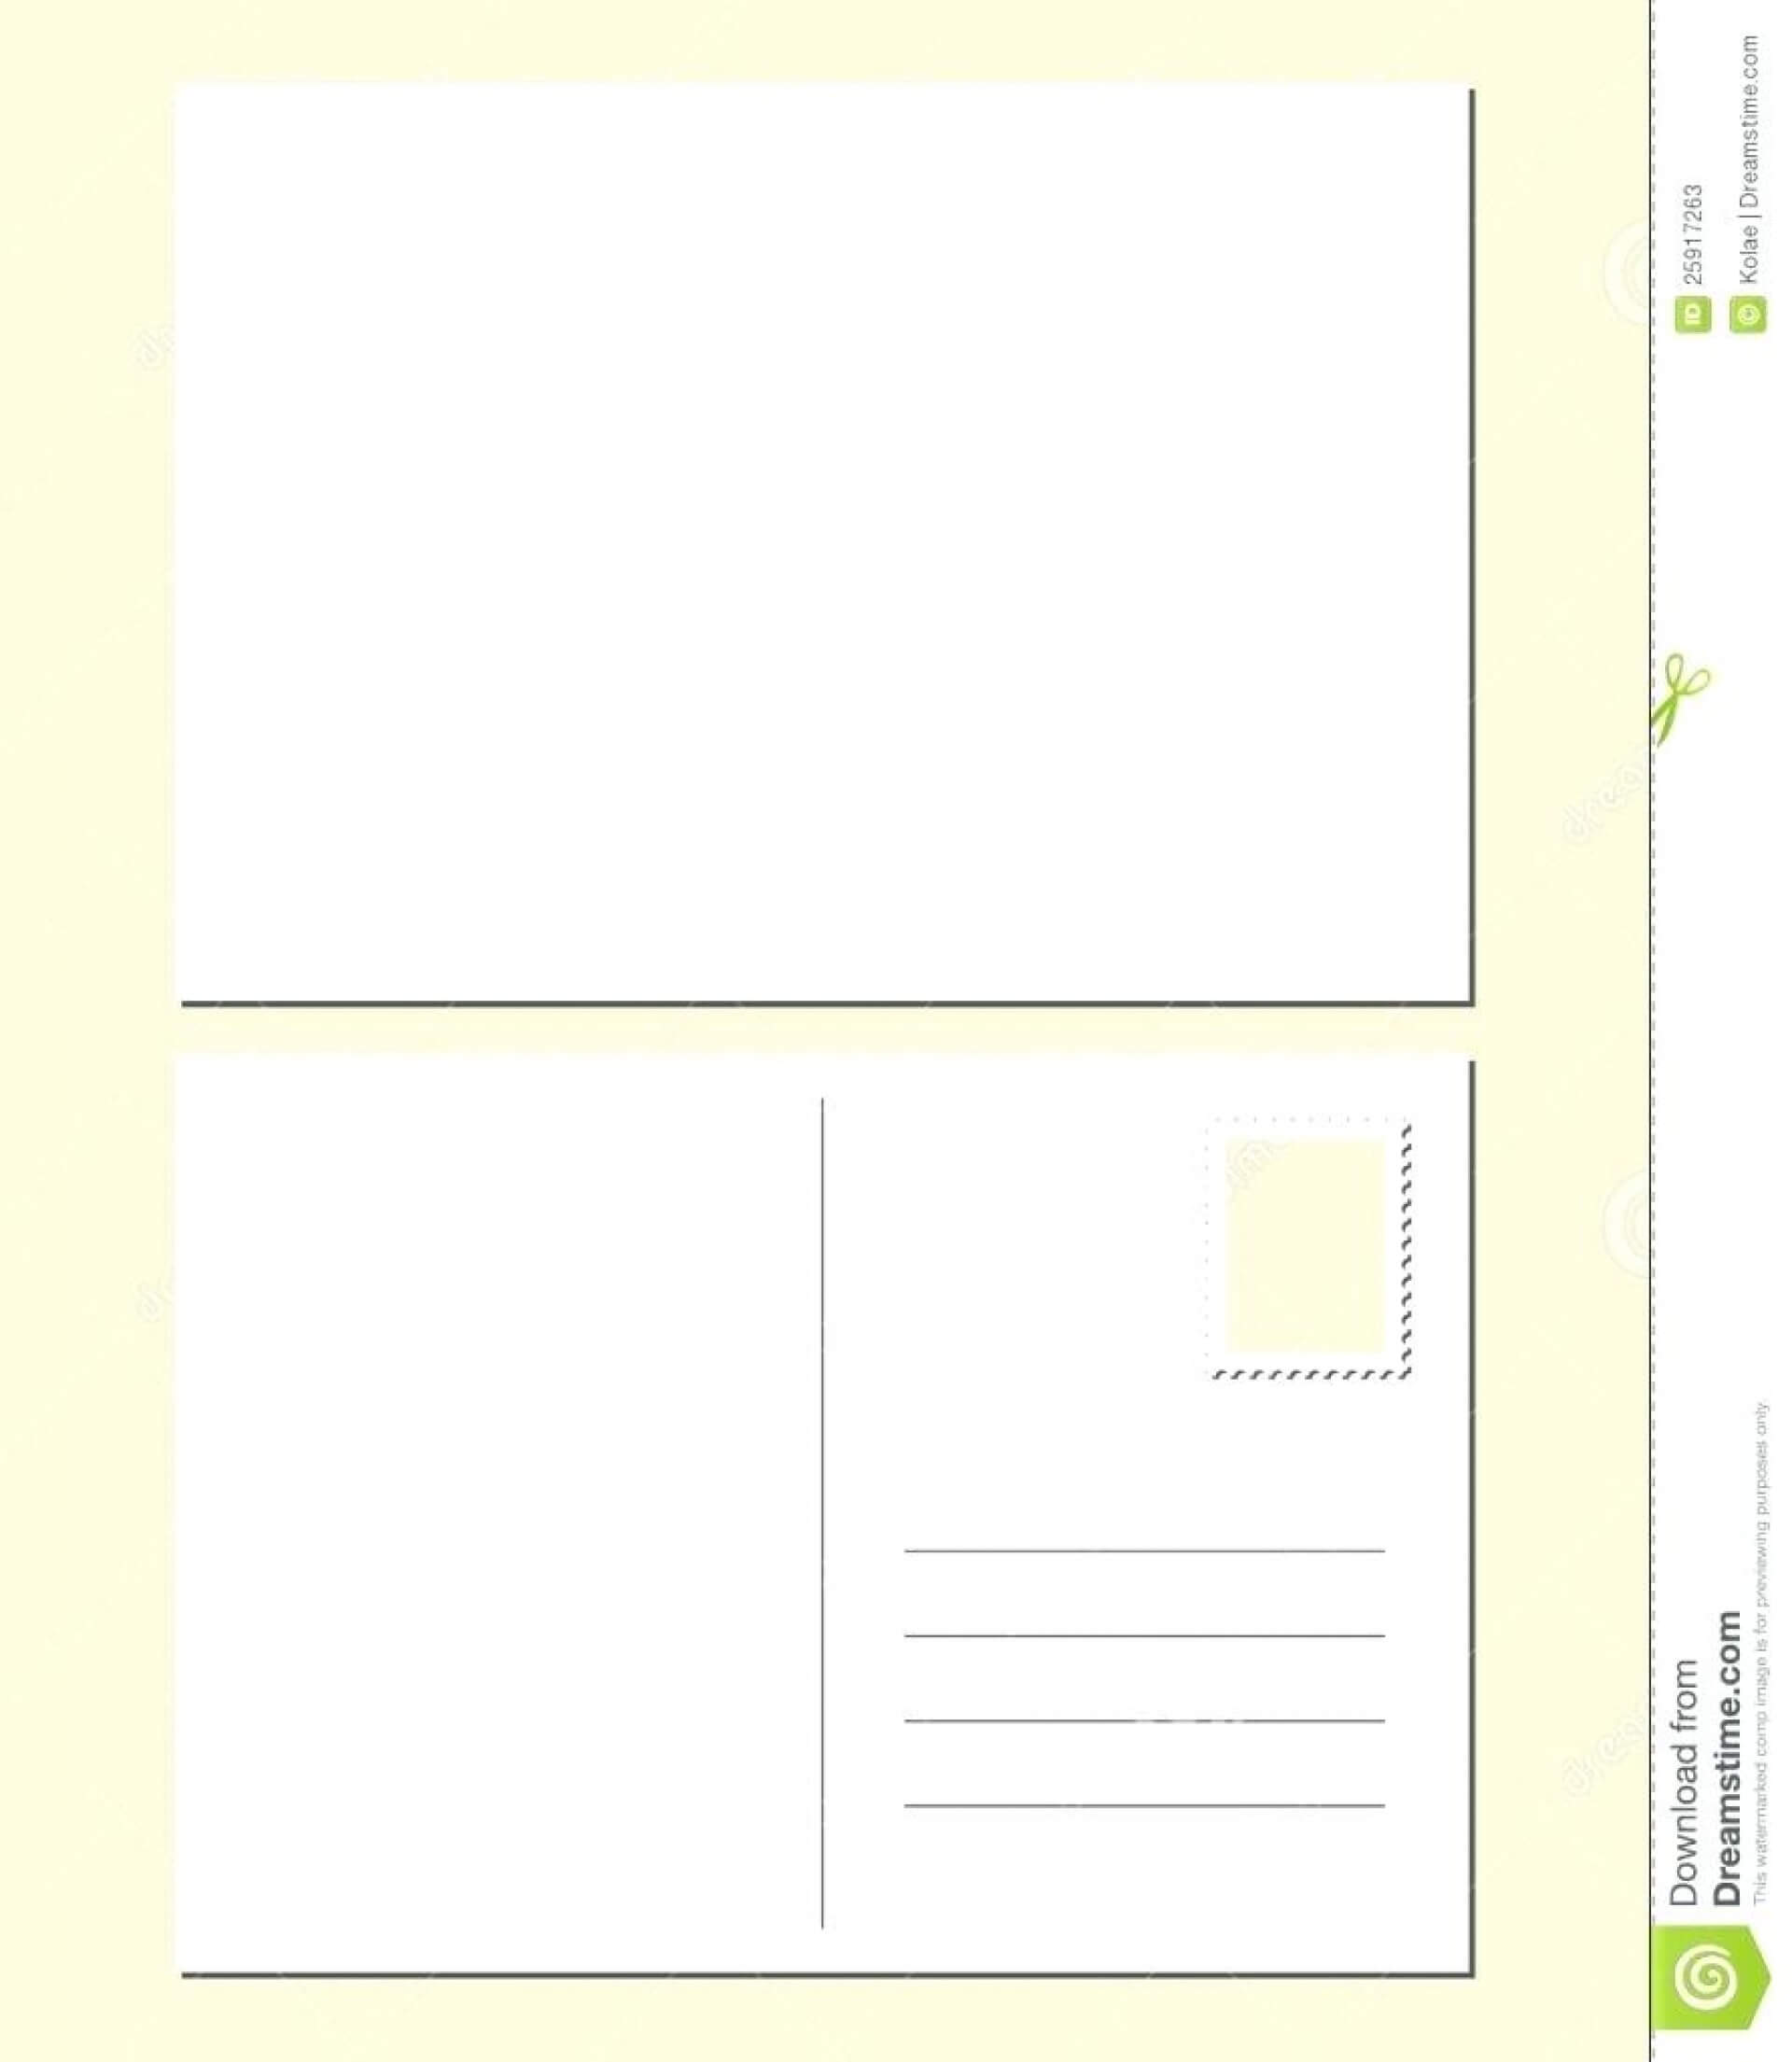 038 Template Ideas Free Printable Postcards Postcard Clipart With Free Blank Postcard Template For Word